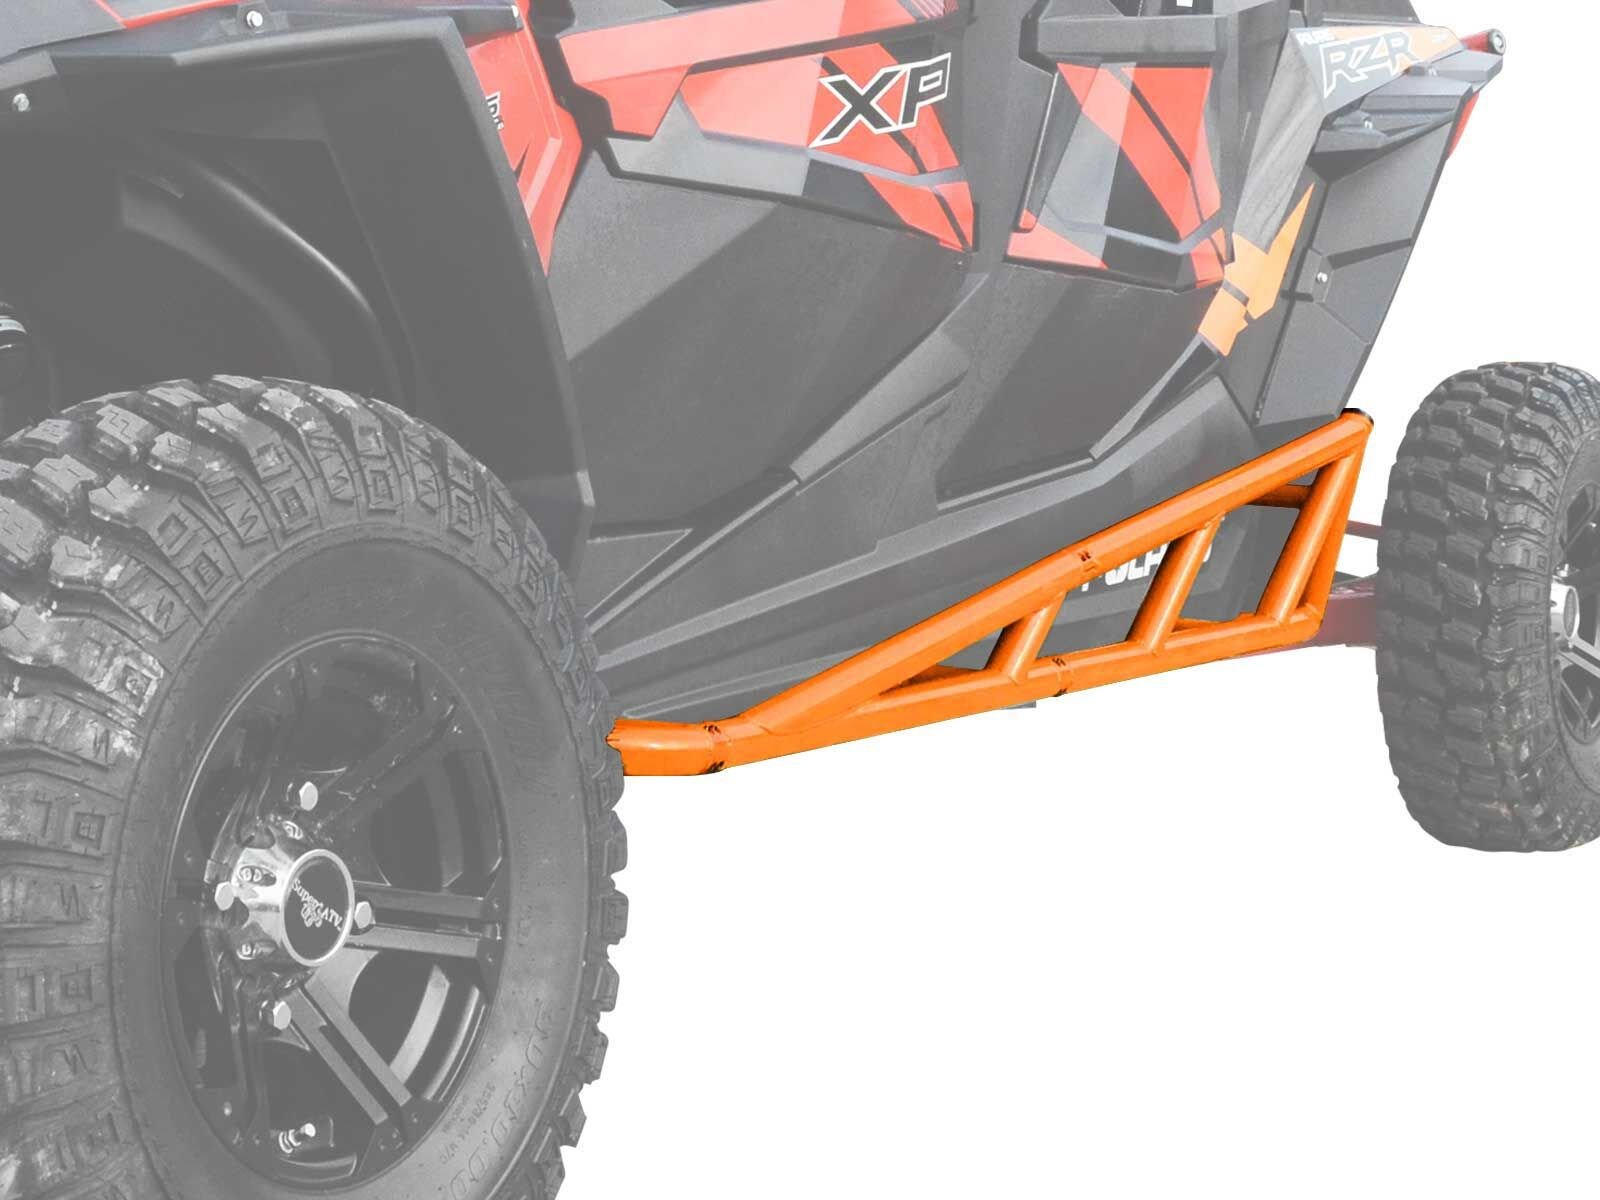 SuperATV Nerf Bars/Tree Kickers/Rock Sliders for Polaris RZR XP 4 1000 (2014+) - Orange - Compatible With Our Full Protection Kit!